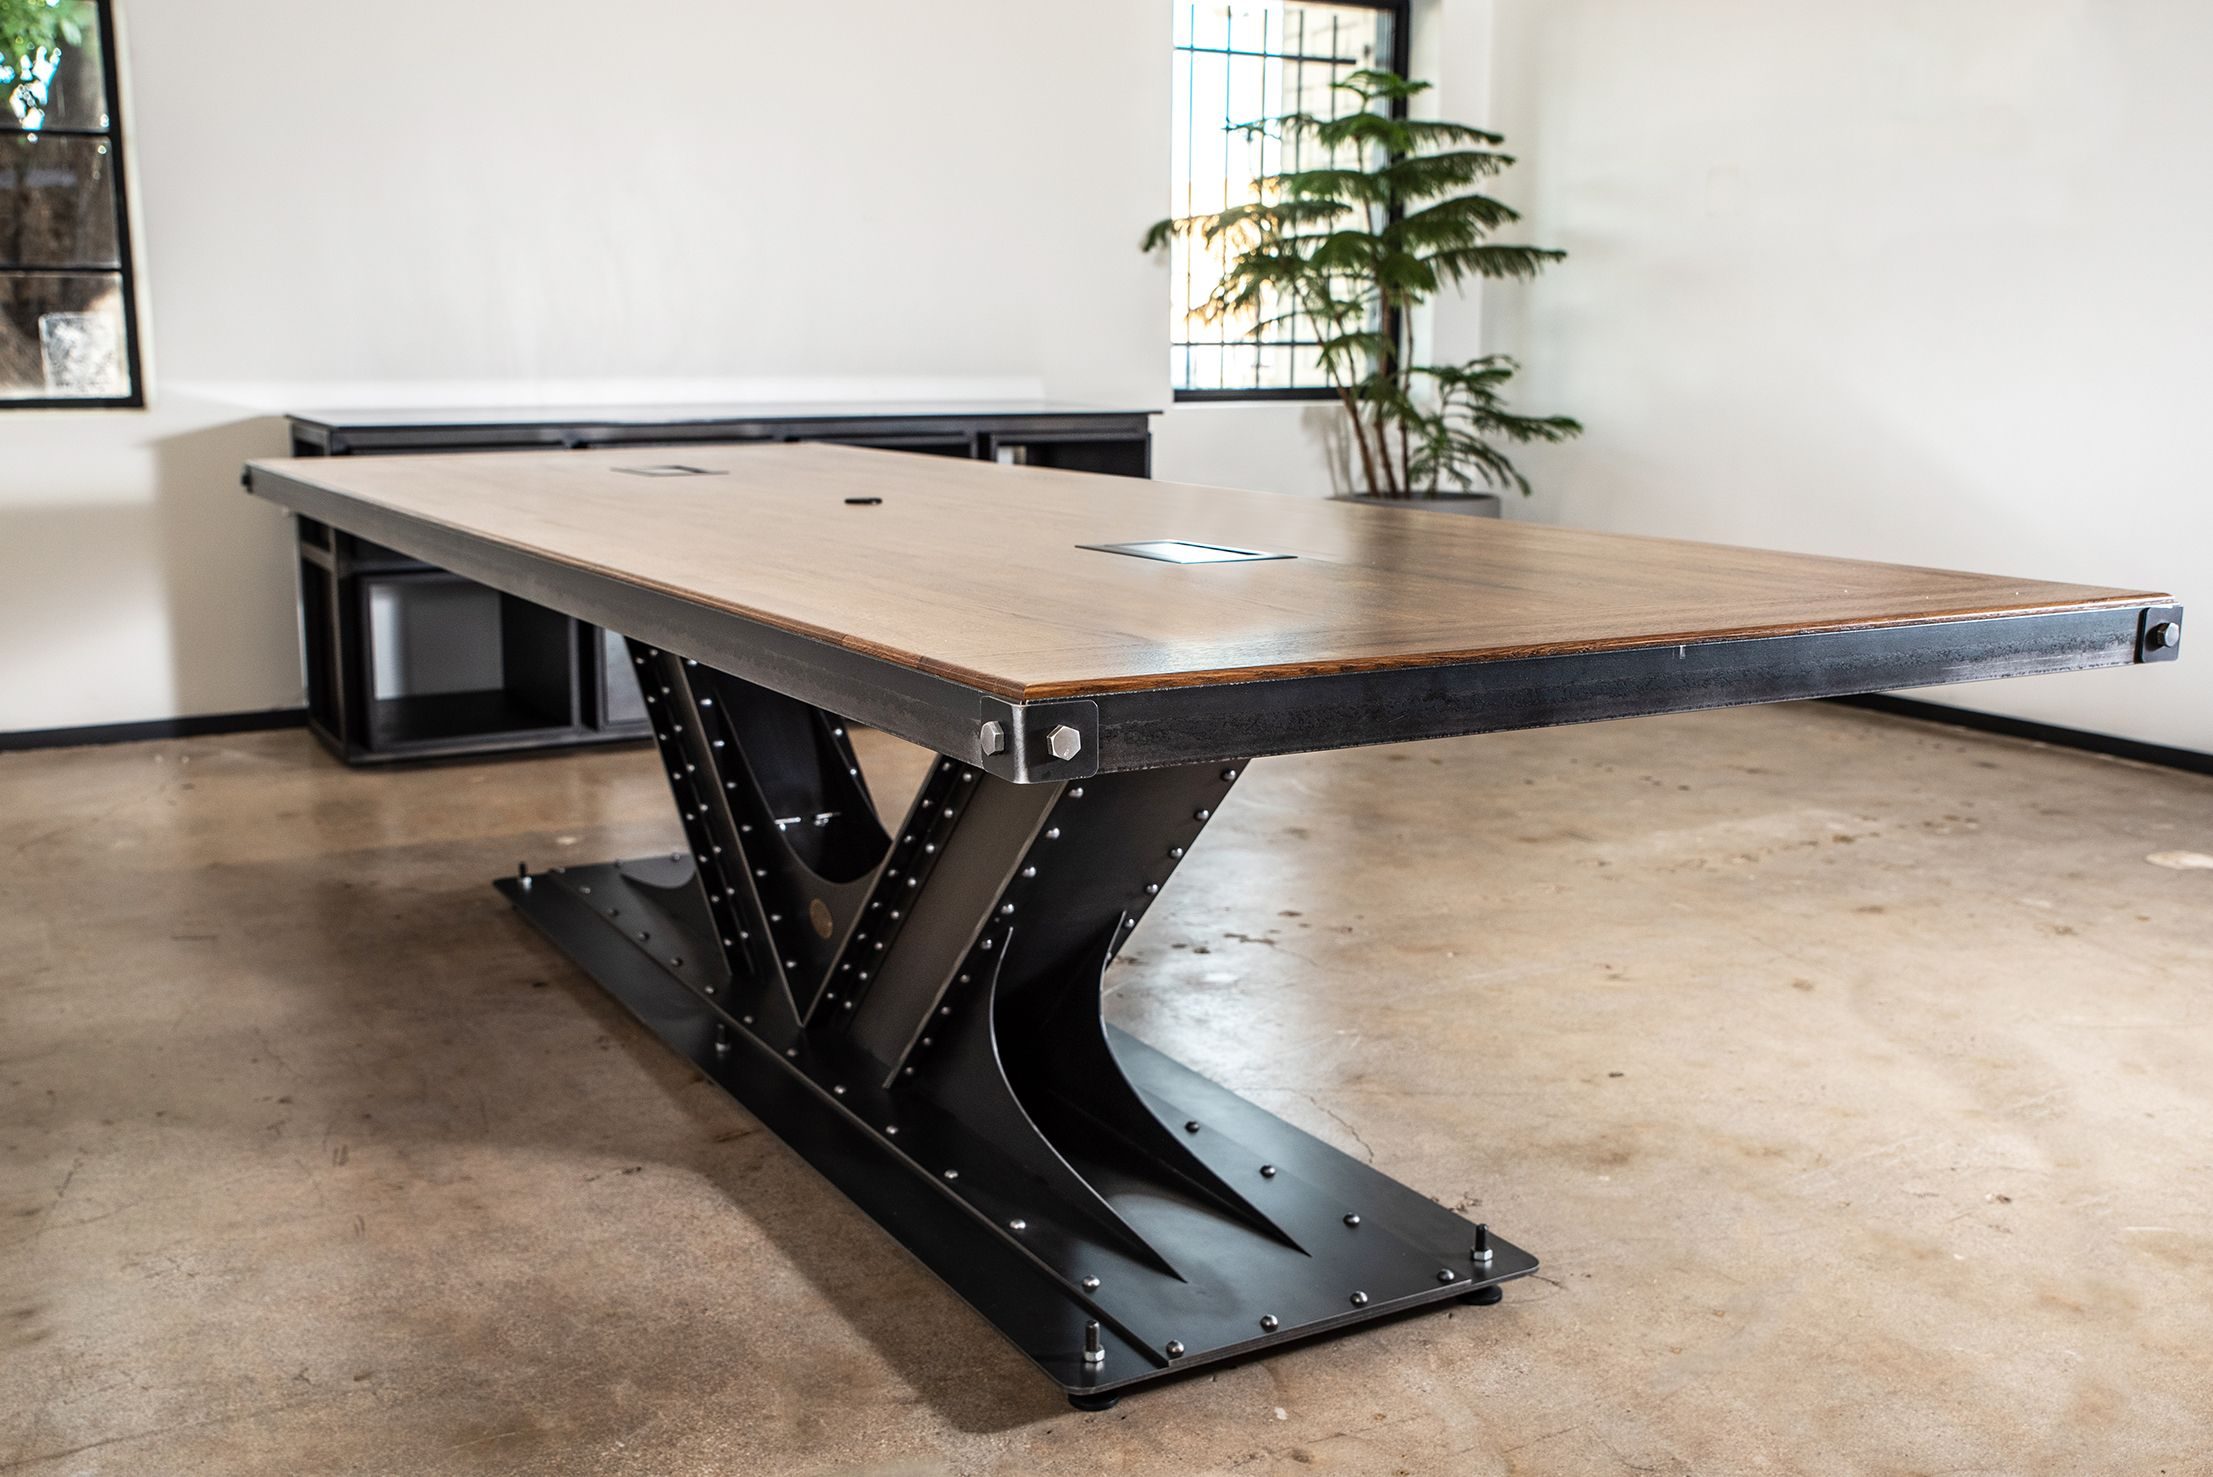 This High End Conference Room Table Will Complete The Decor Of Any Luxury Office Decor Rustic Furniture Unique Furniture Pieces Custom Industrial Furniture